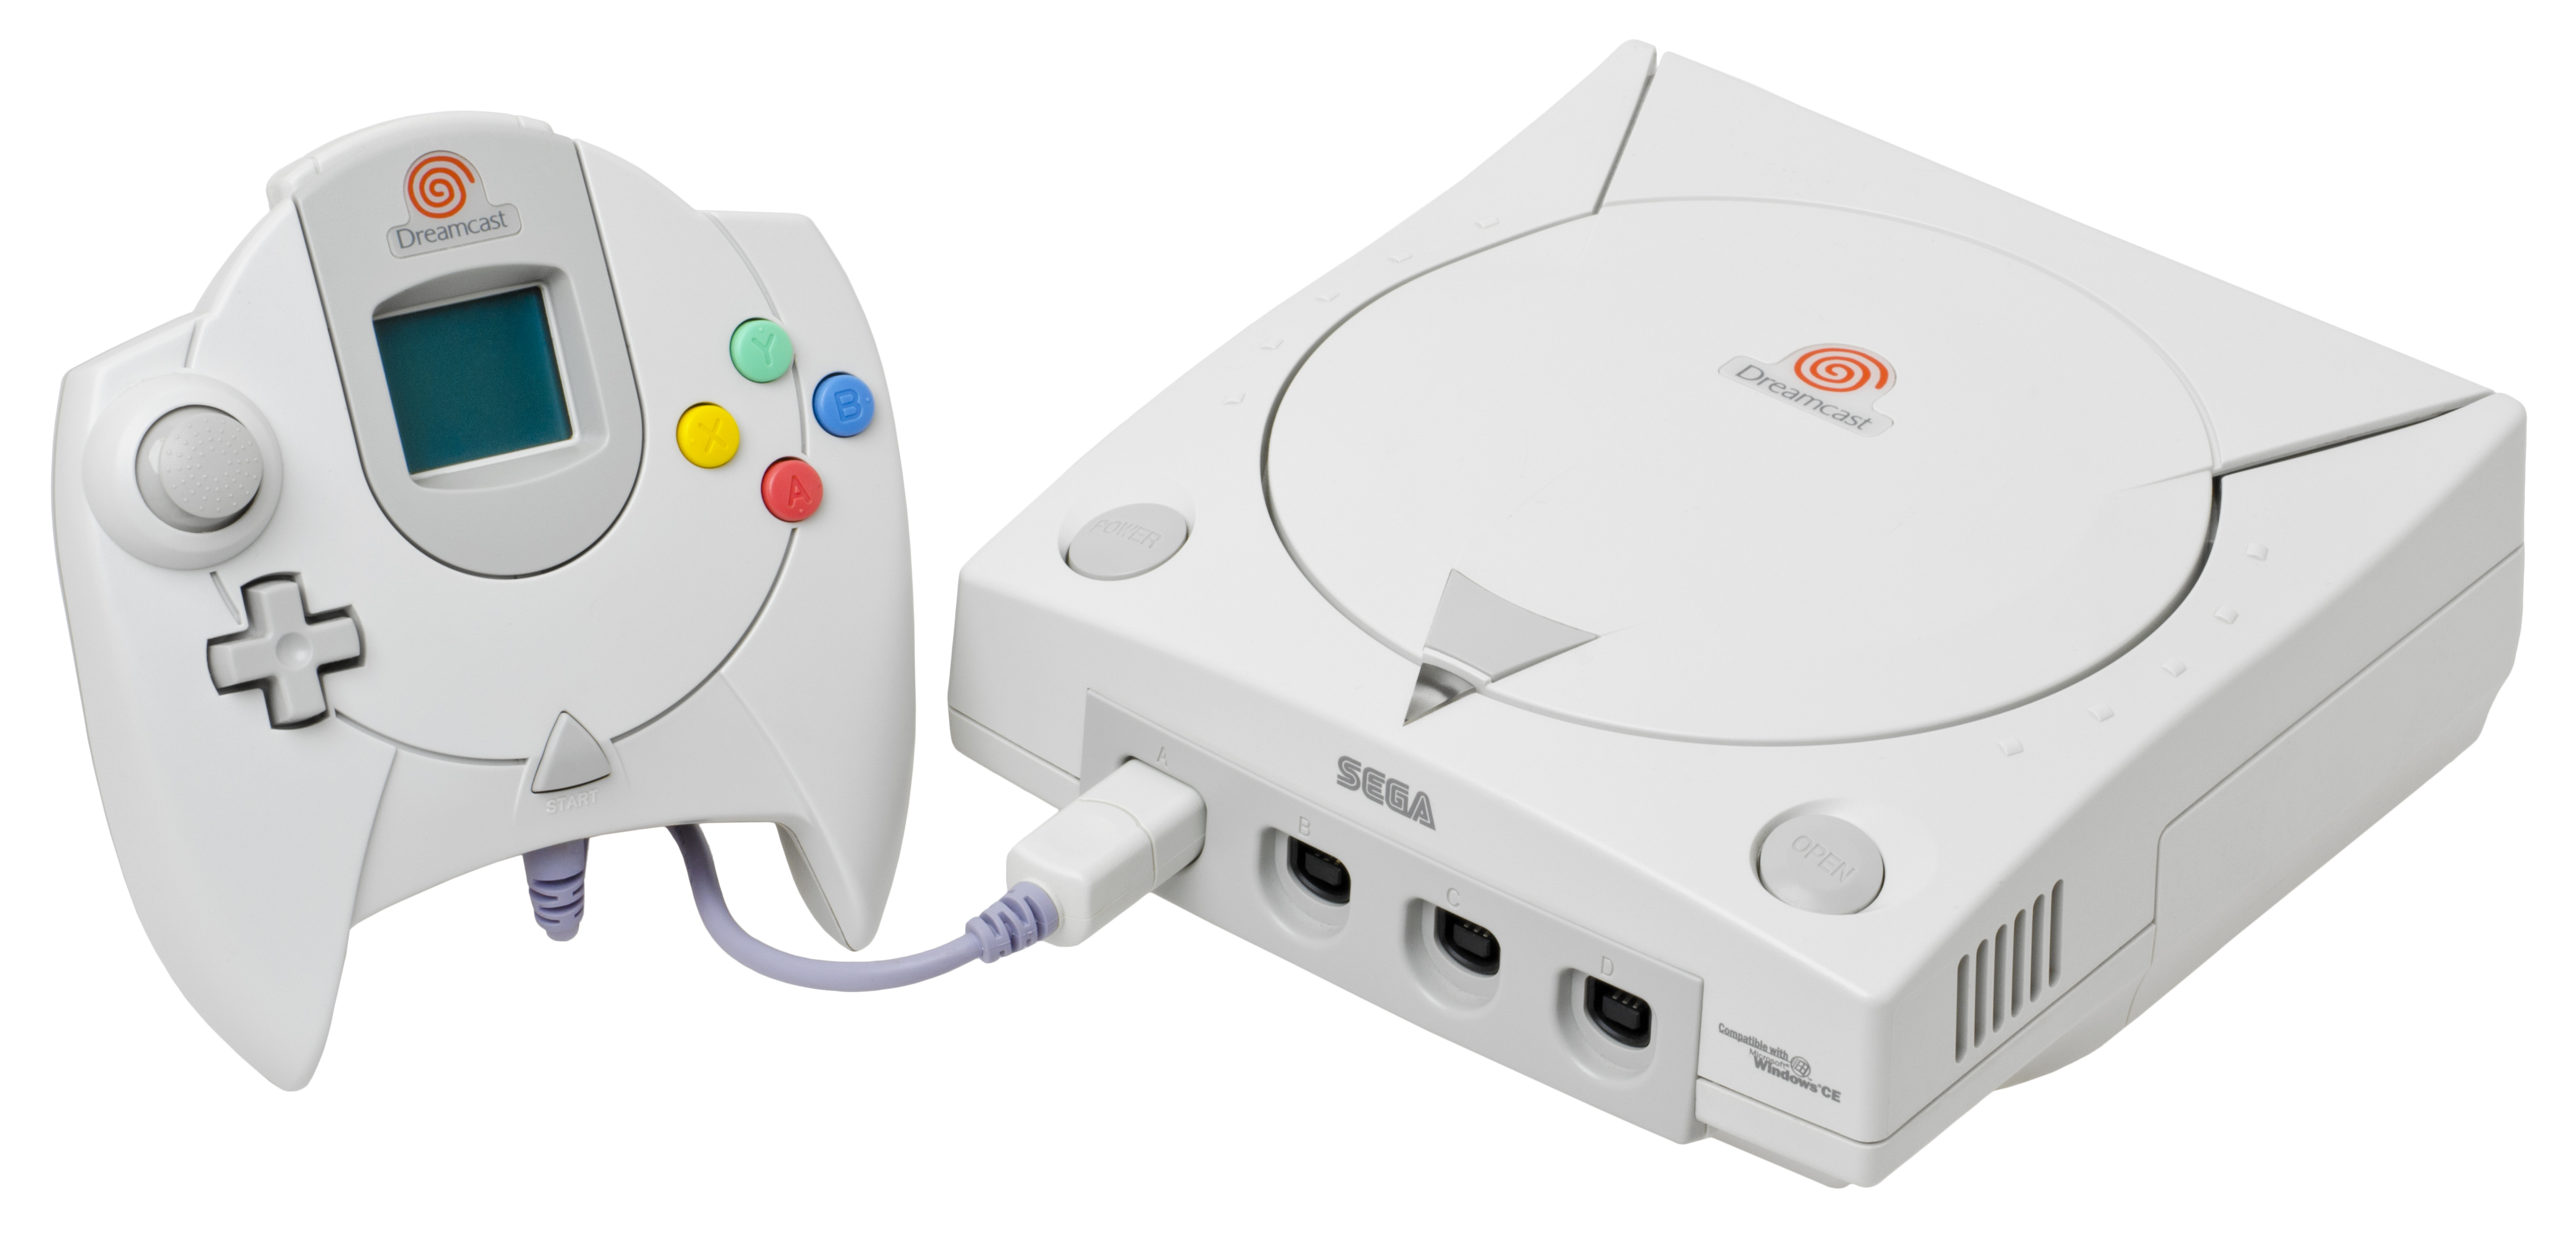 Arguably ahead of it's time, the Sega Dreamcast was a commercial failure.